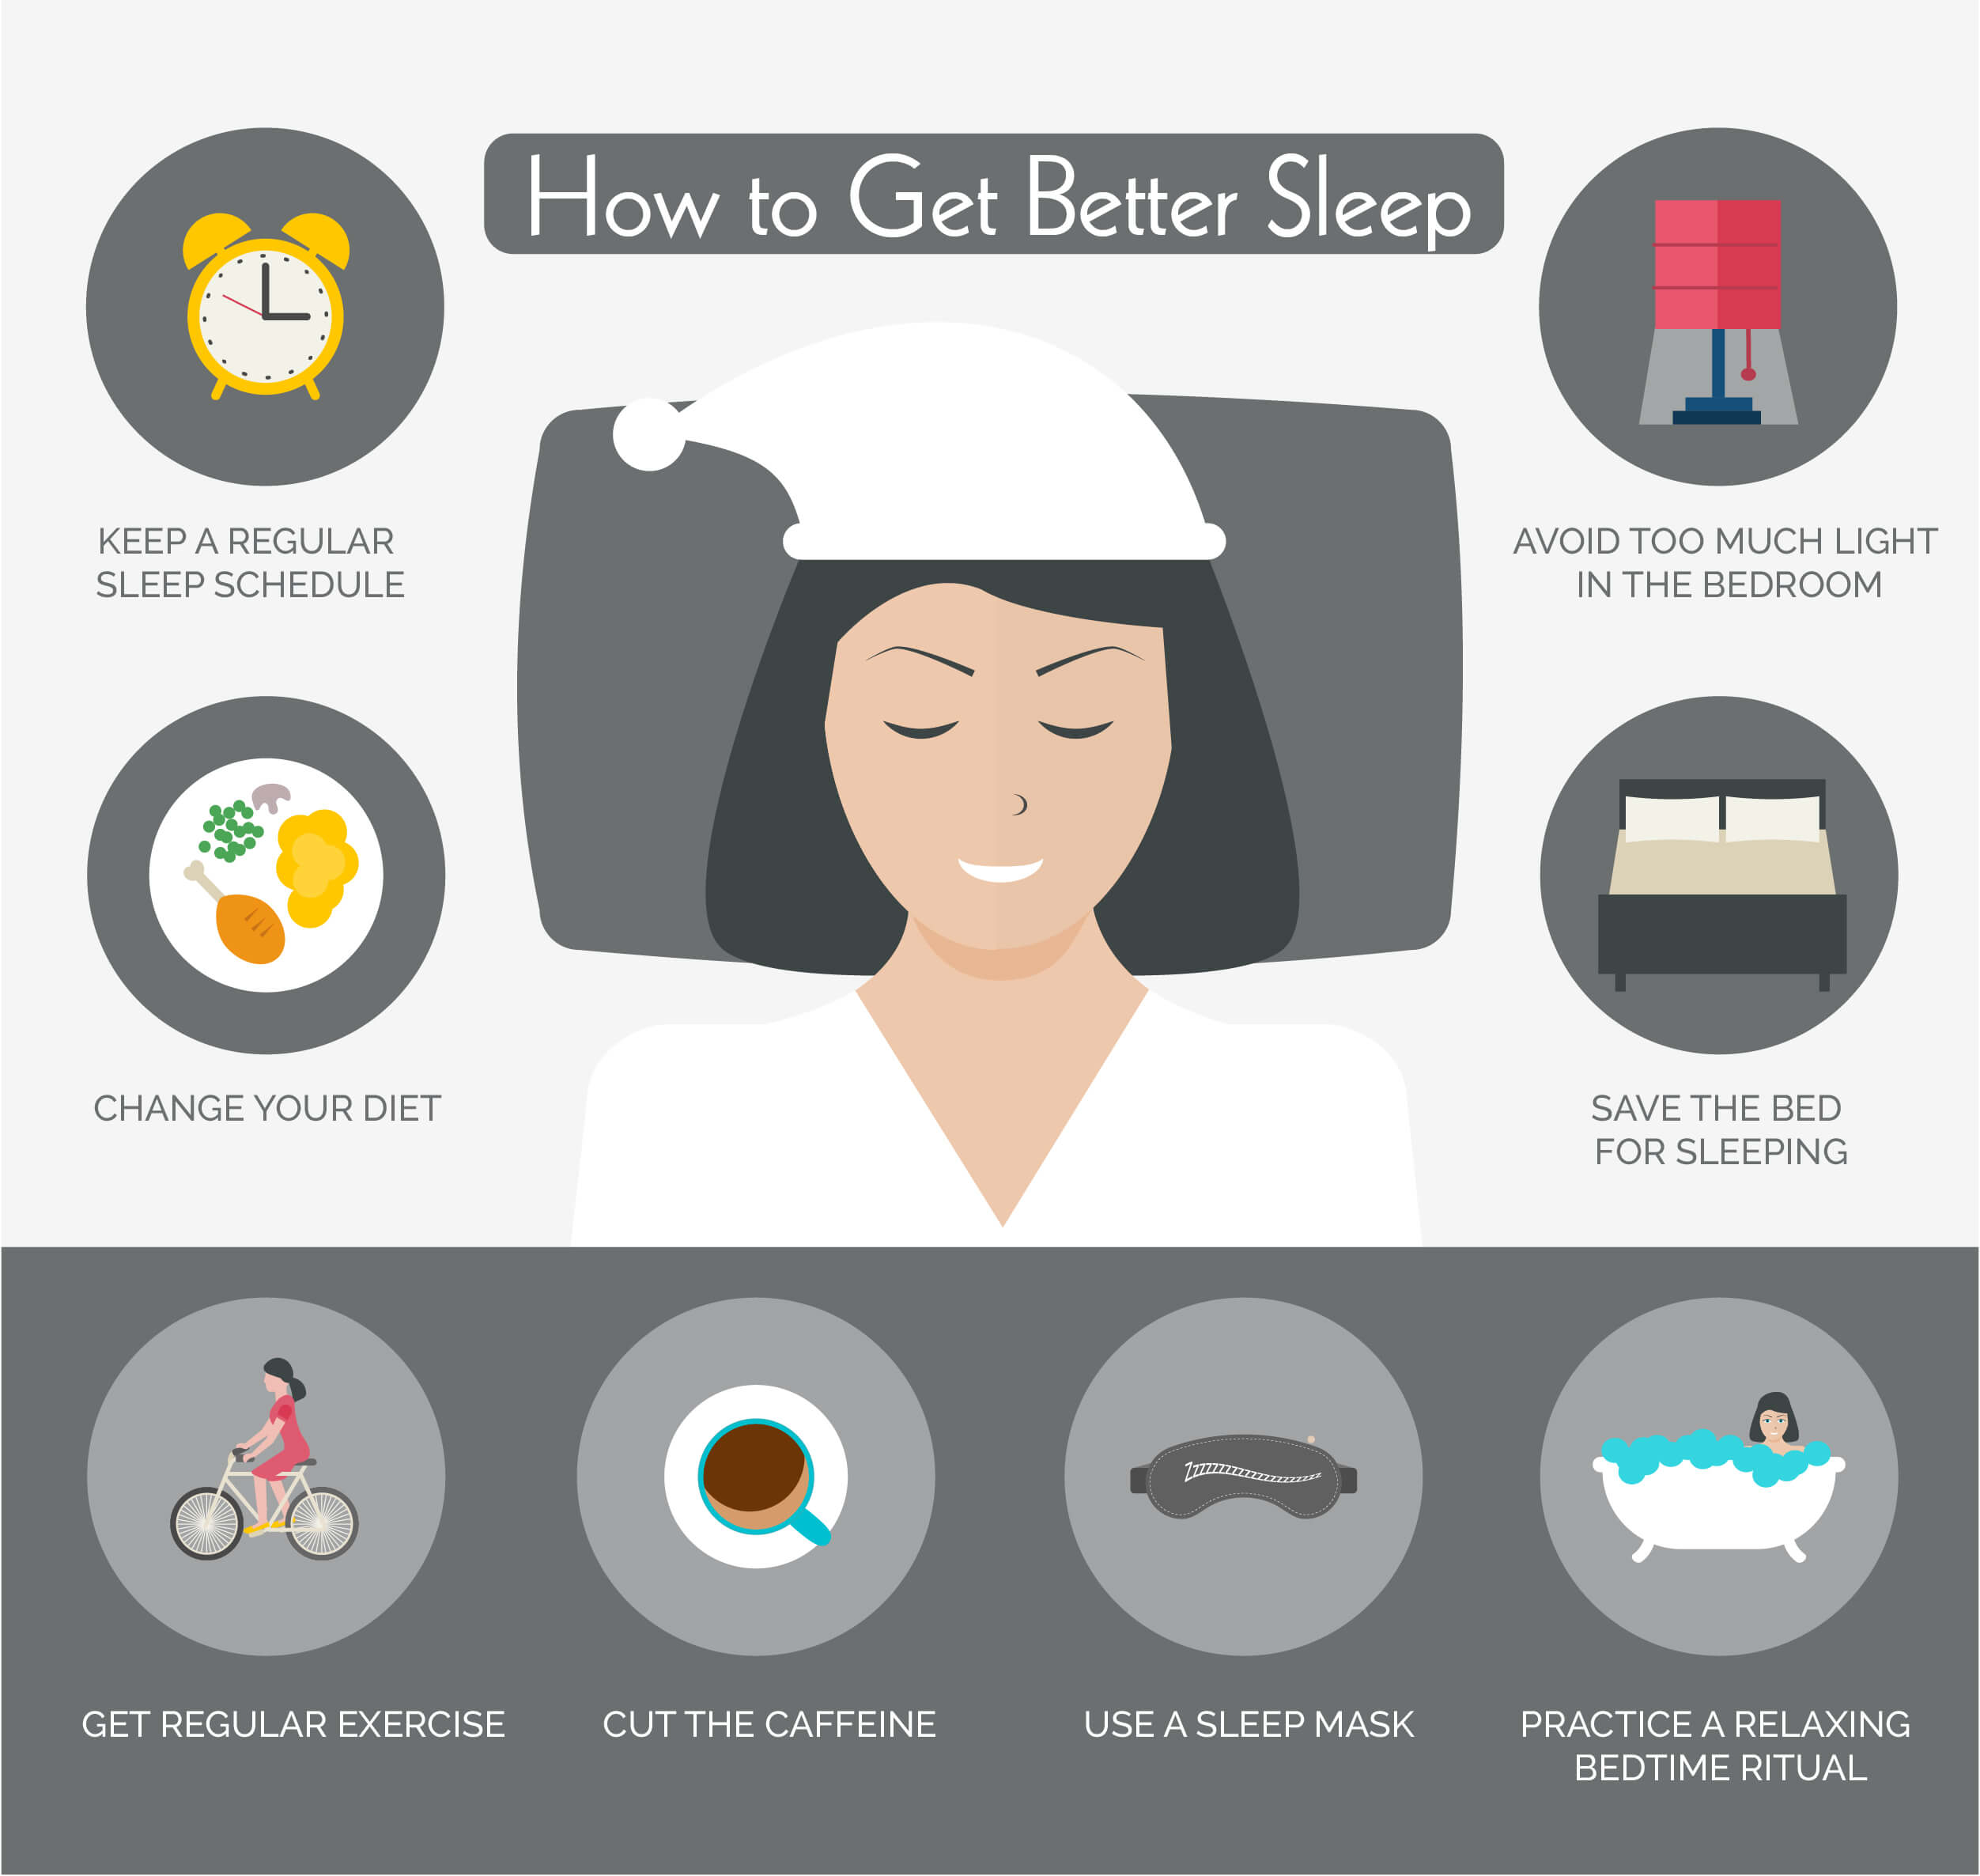 Infographic on how to get better sleep